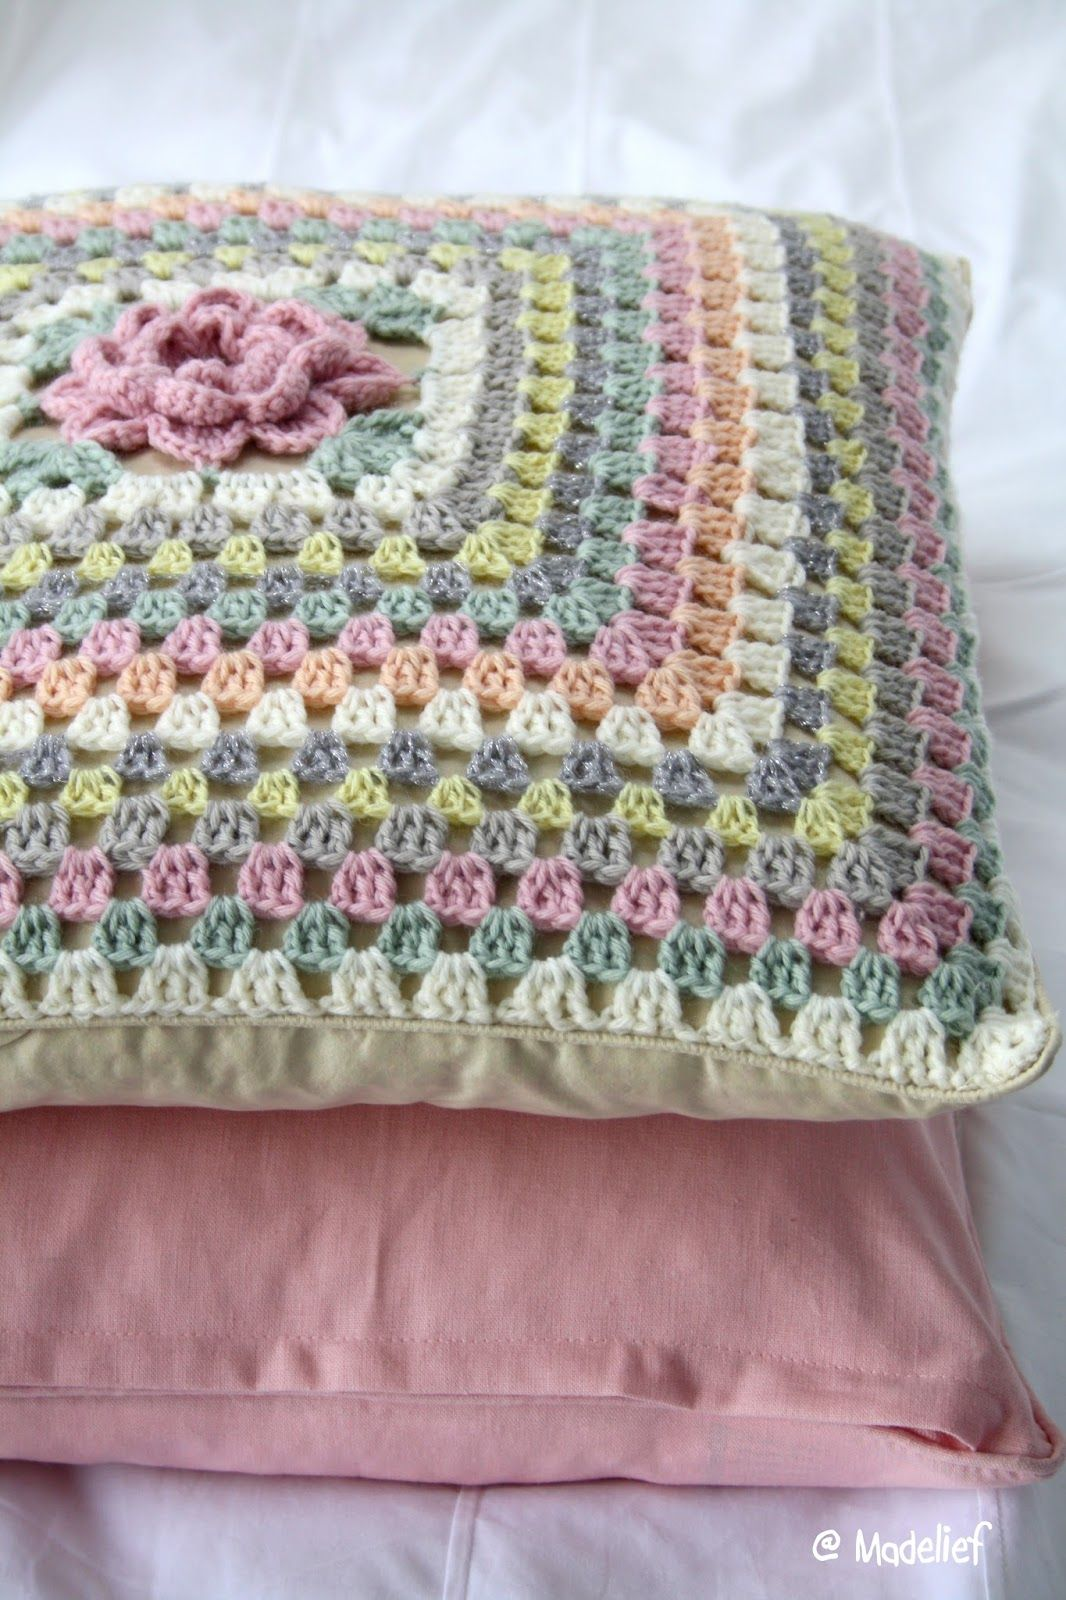 Crochet inspiration | cojines | Pinterest | Tejido, Ganchillo y Bordado